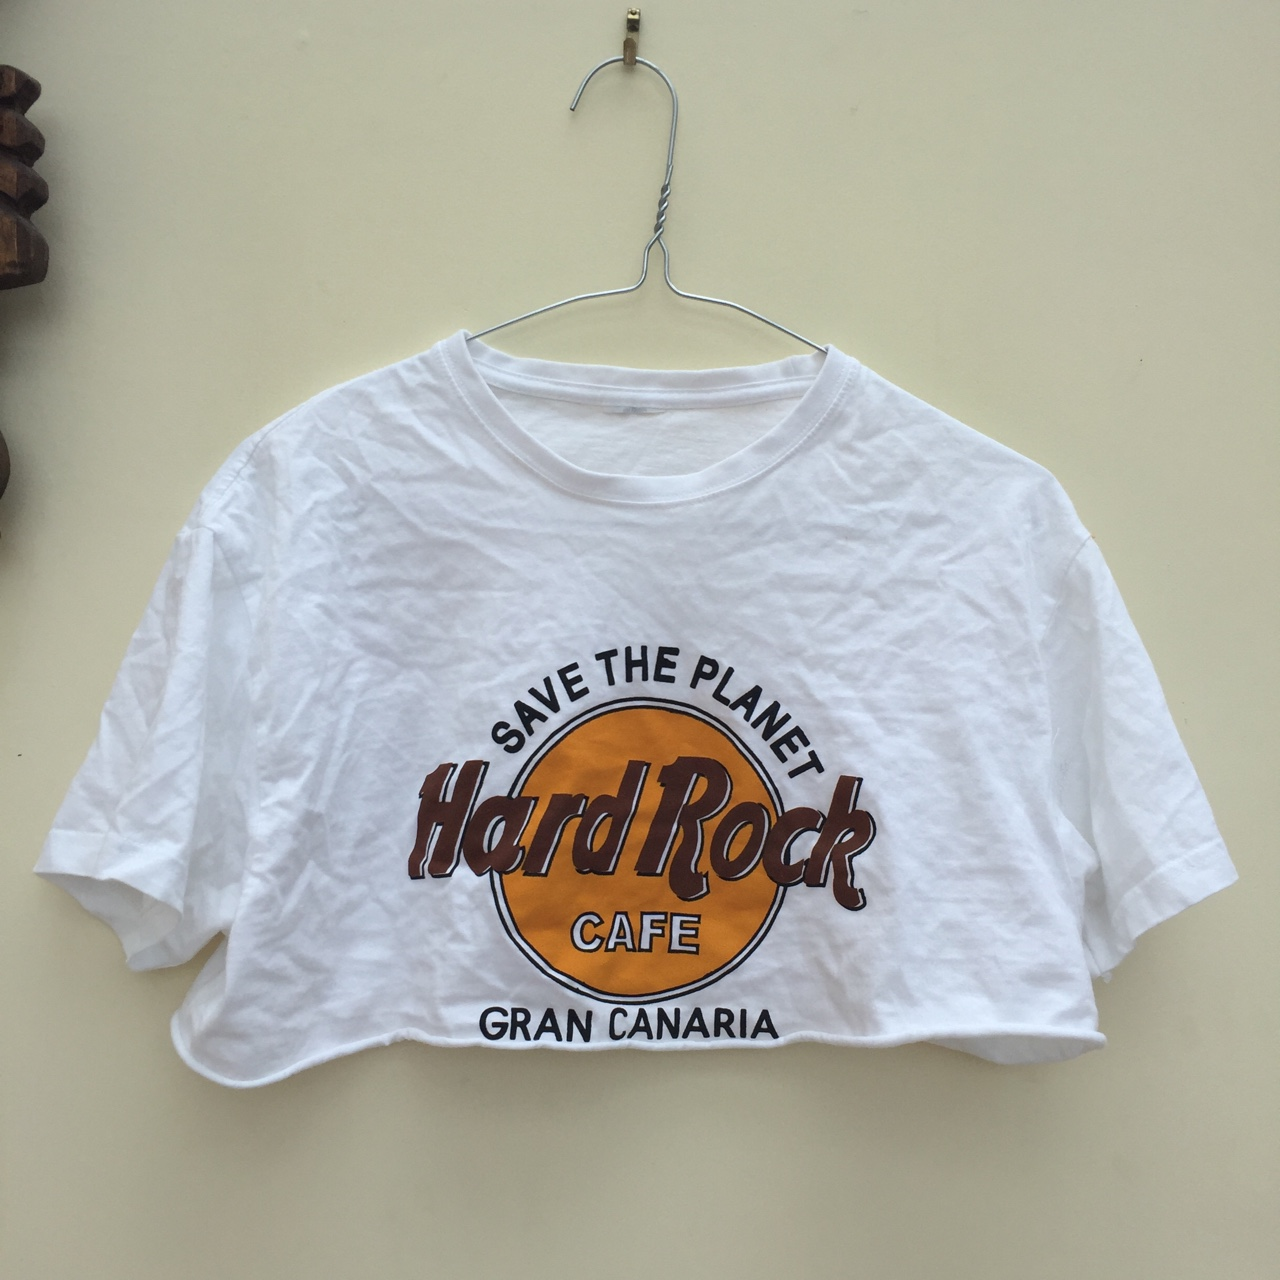 Hard Rock Cafe Cropped T Shirt Gran Canaria Would Depop